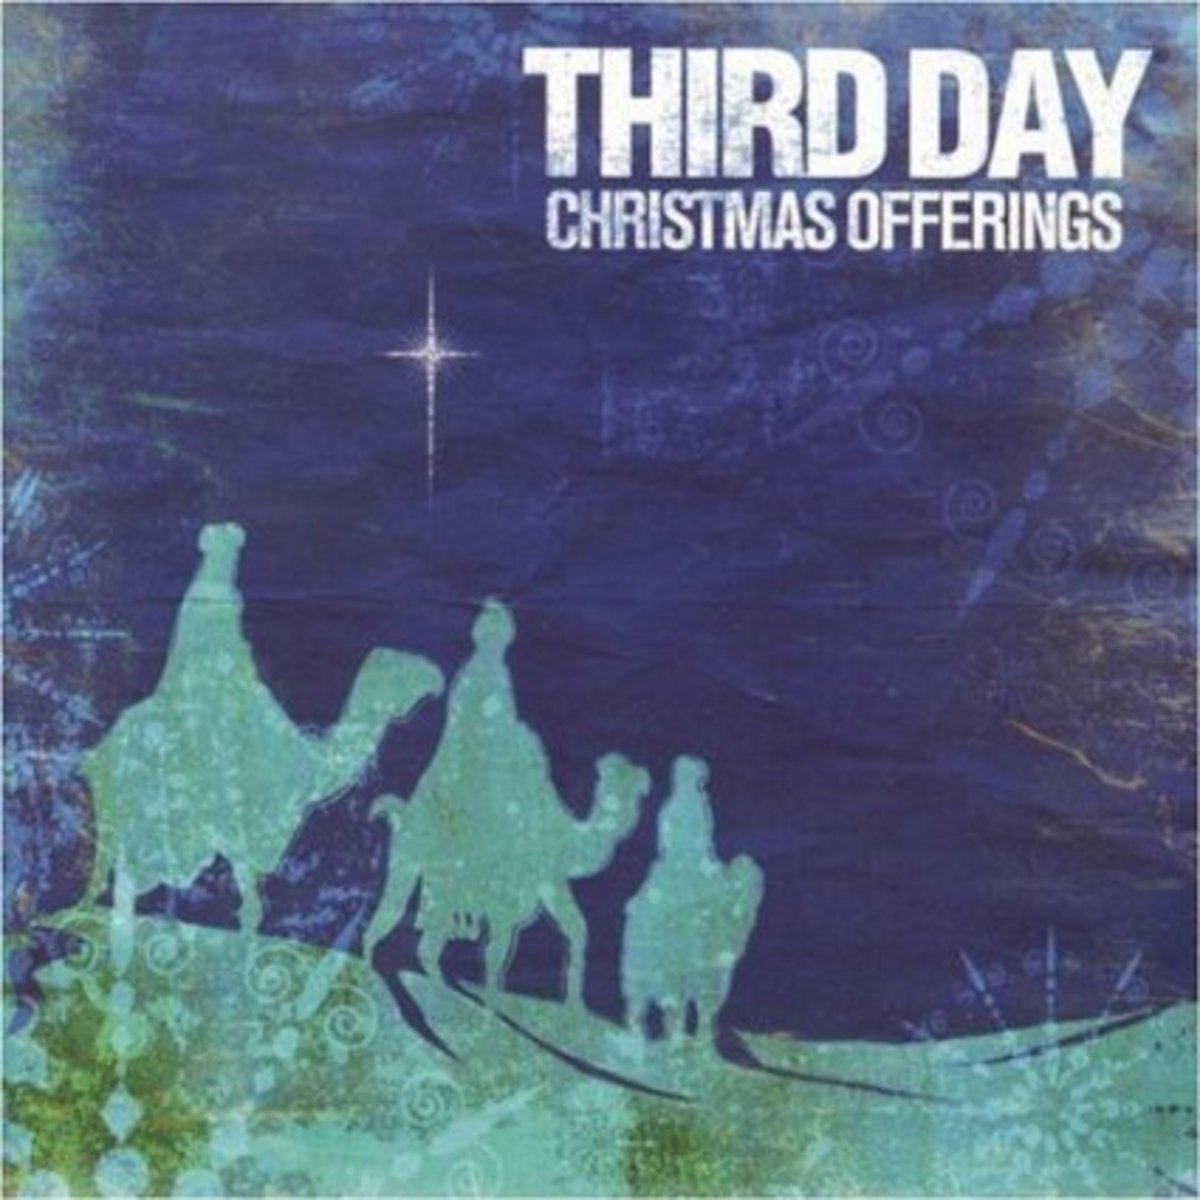 10 Contemporary Christian Christmas Songs   Holidappy